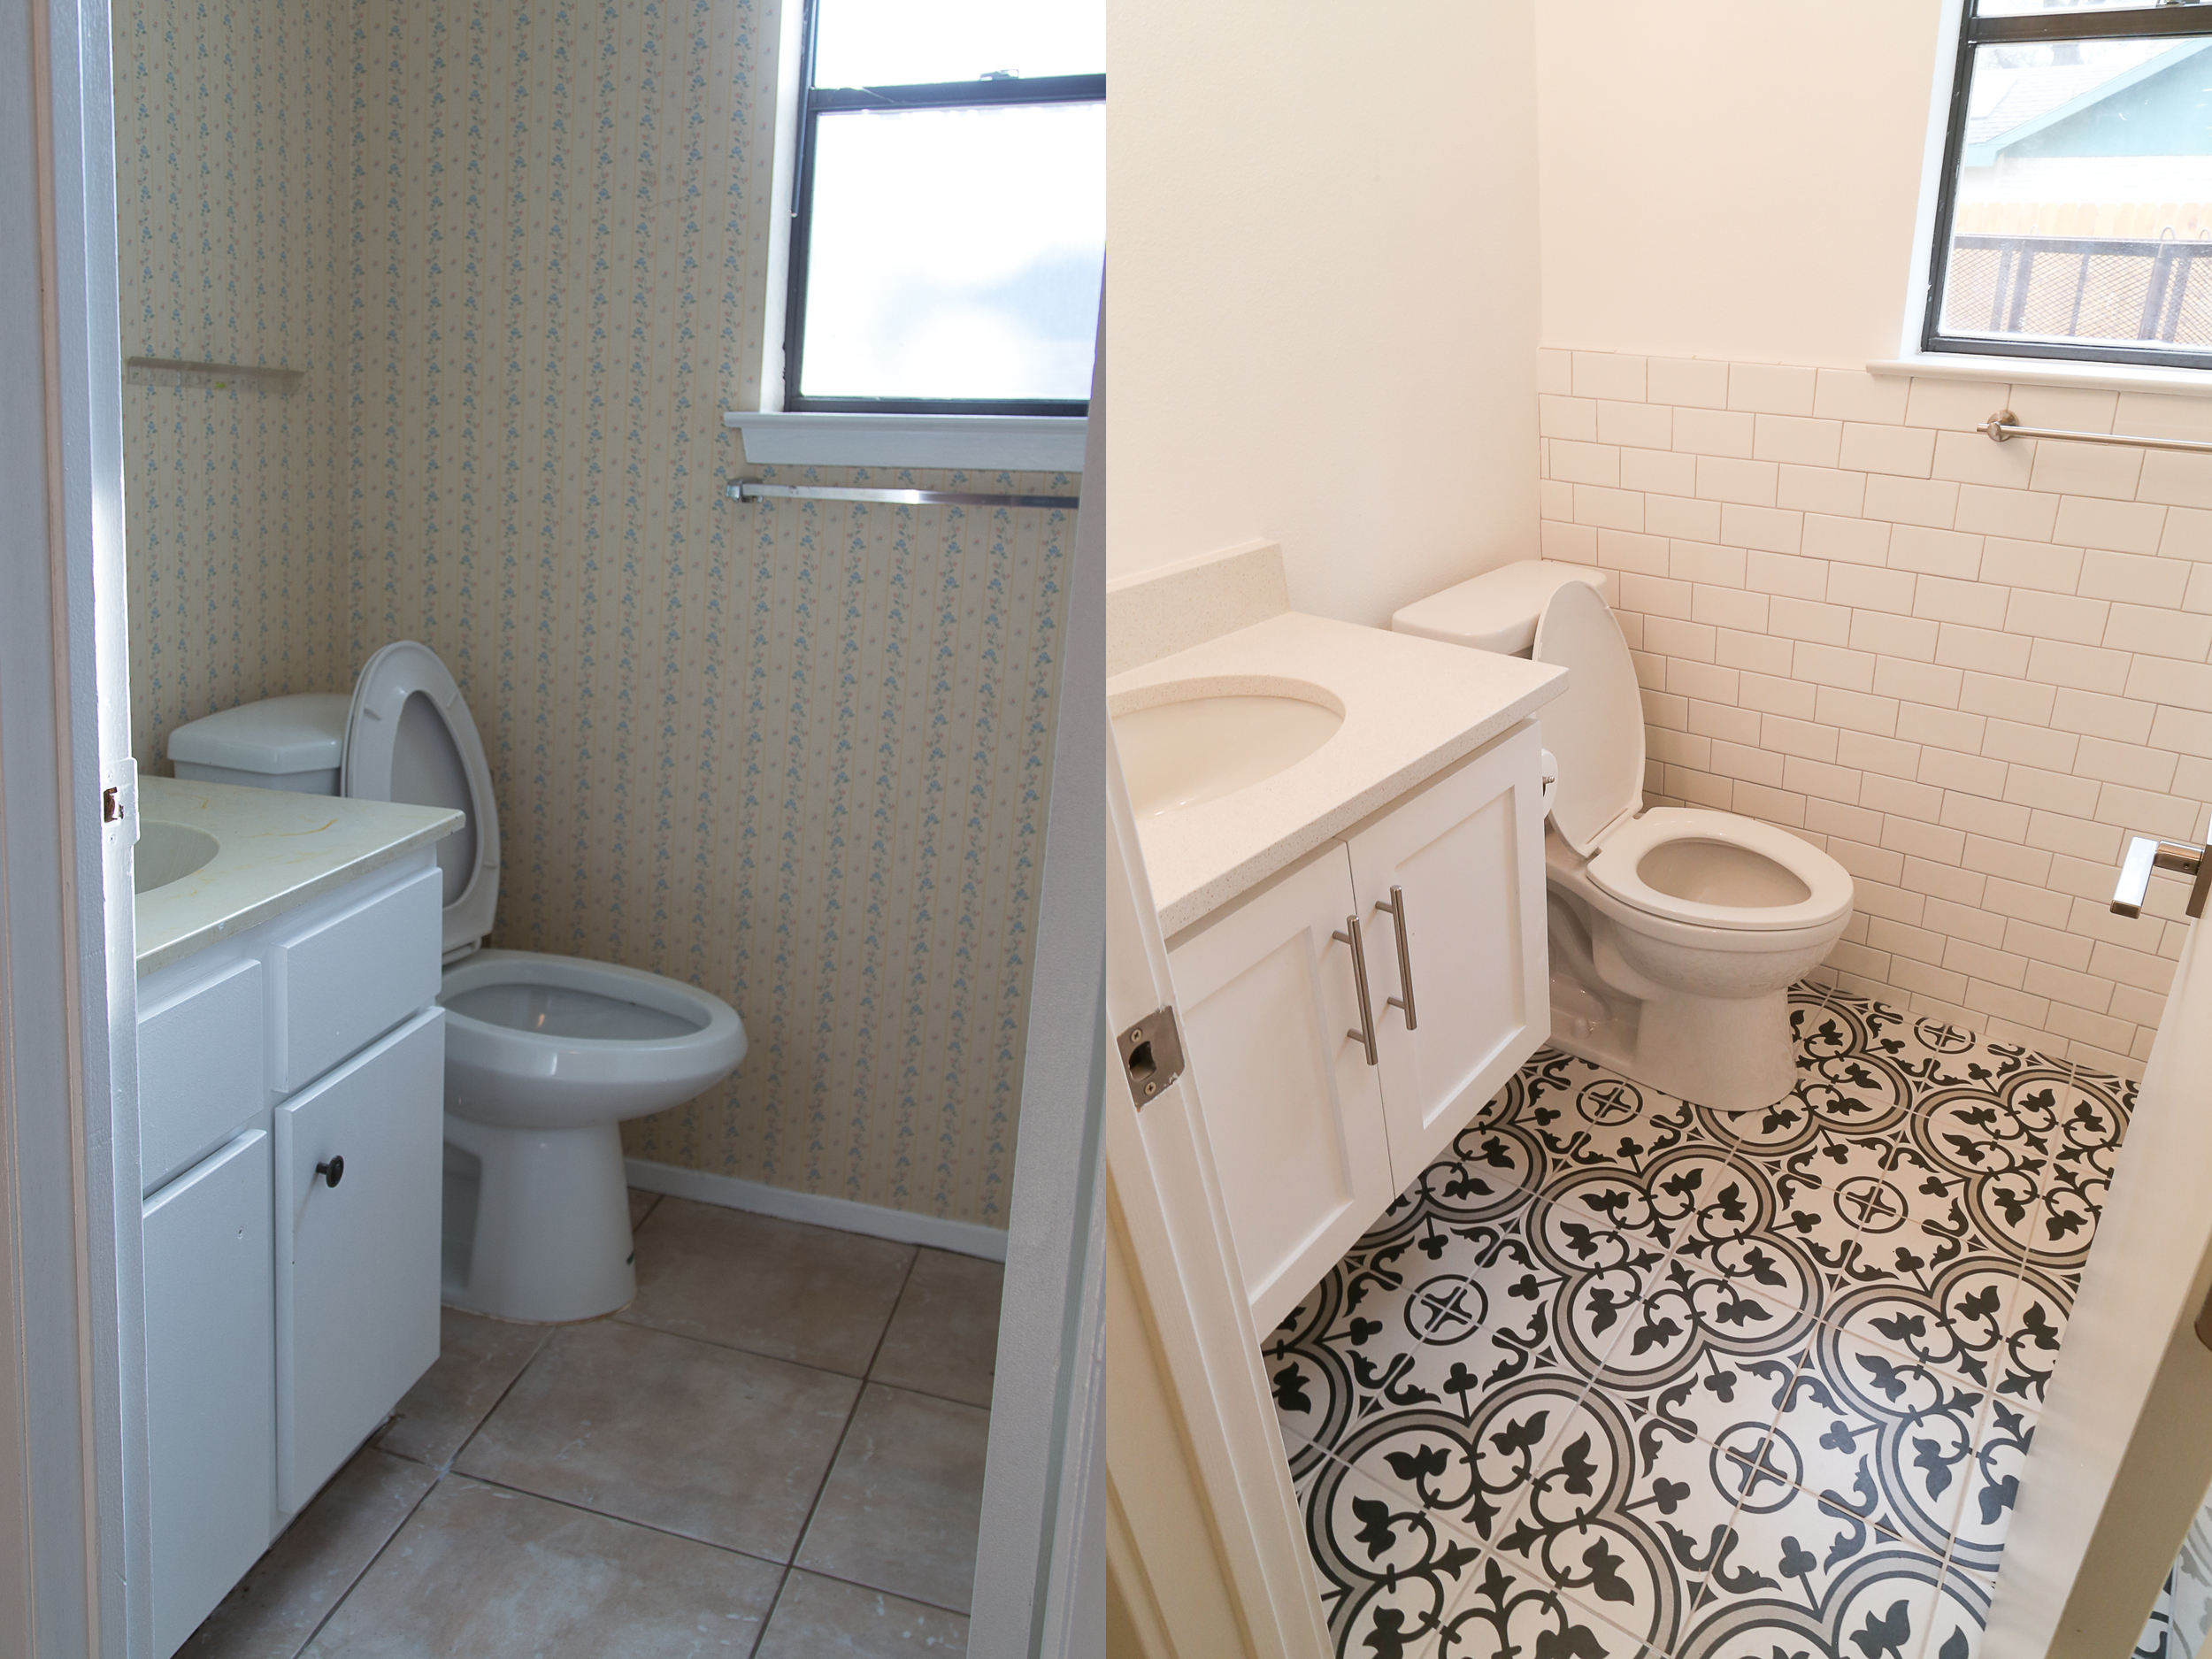 I had my eye on decorative tile since before we even bought a house. I just think it is so unique and brings in so much character! This tile paired with the subway wall and subway shower is perfect! Now, we just have to add decoration, shelves, and a mirror!